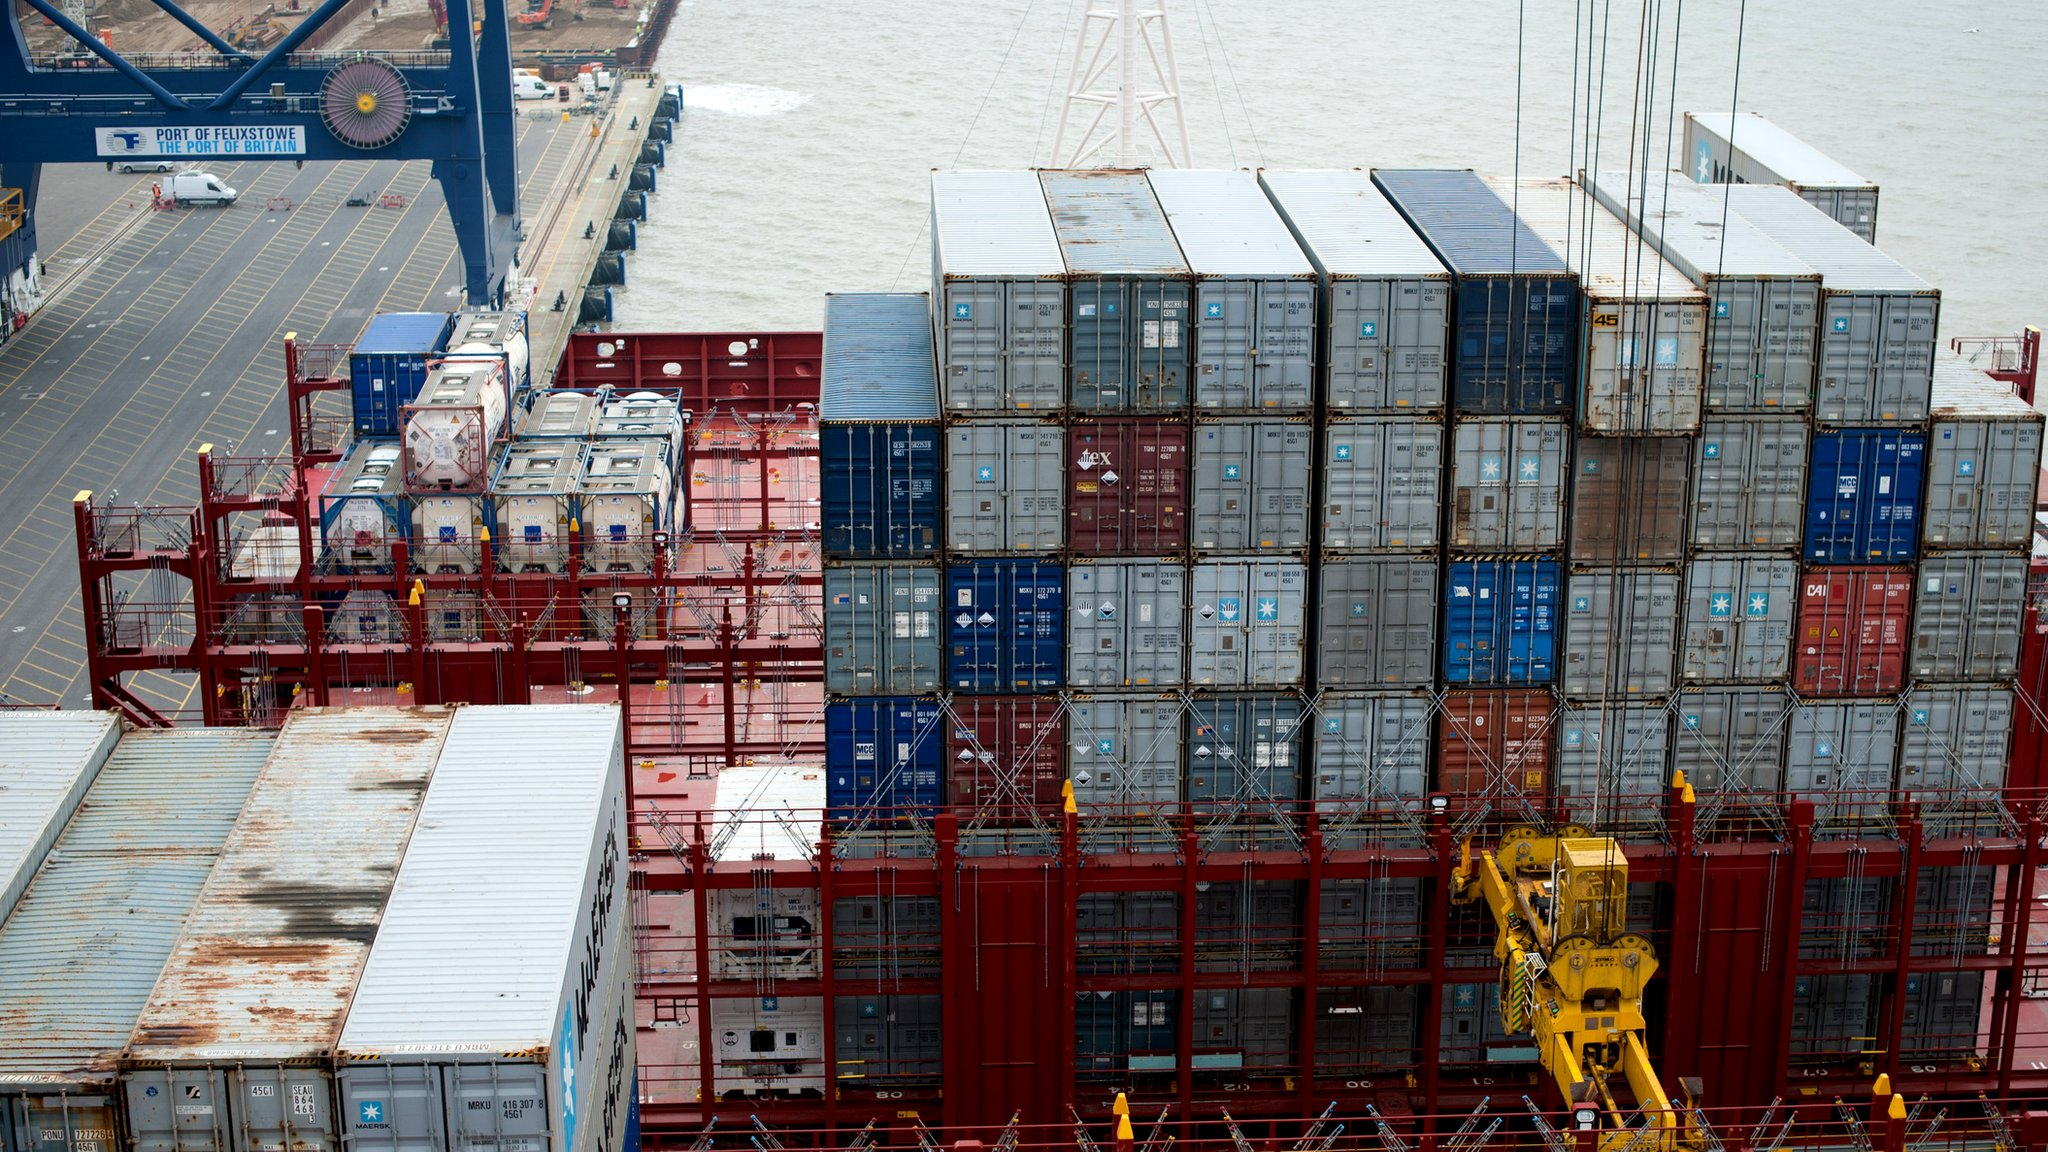 Most imports tariff-free under no-deal plan